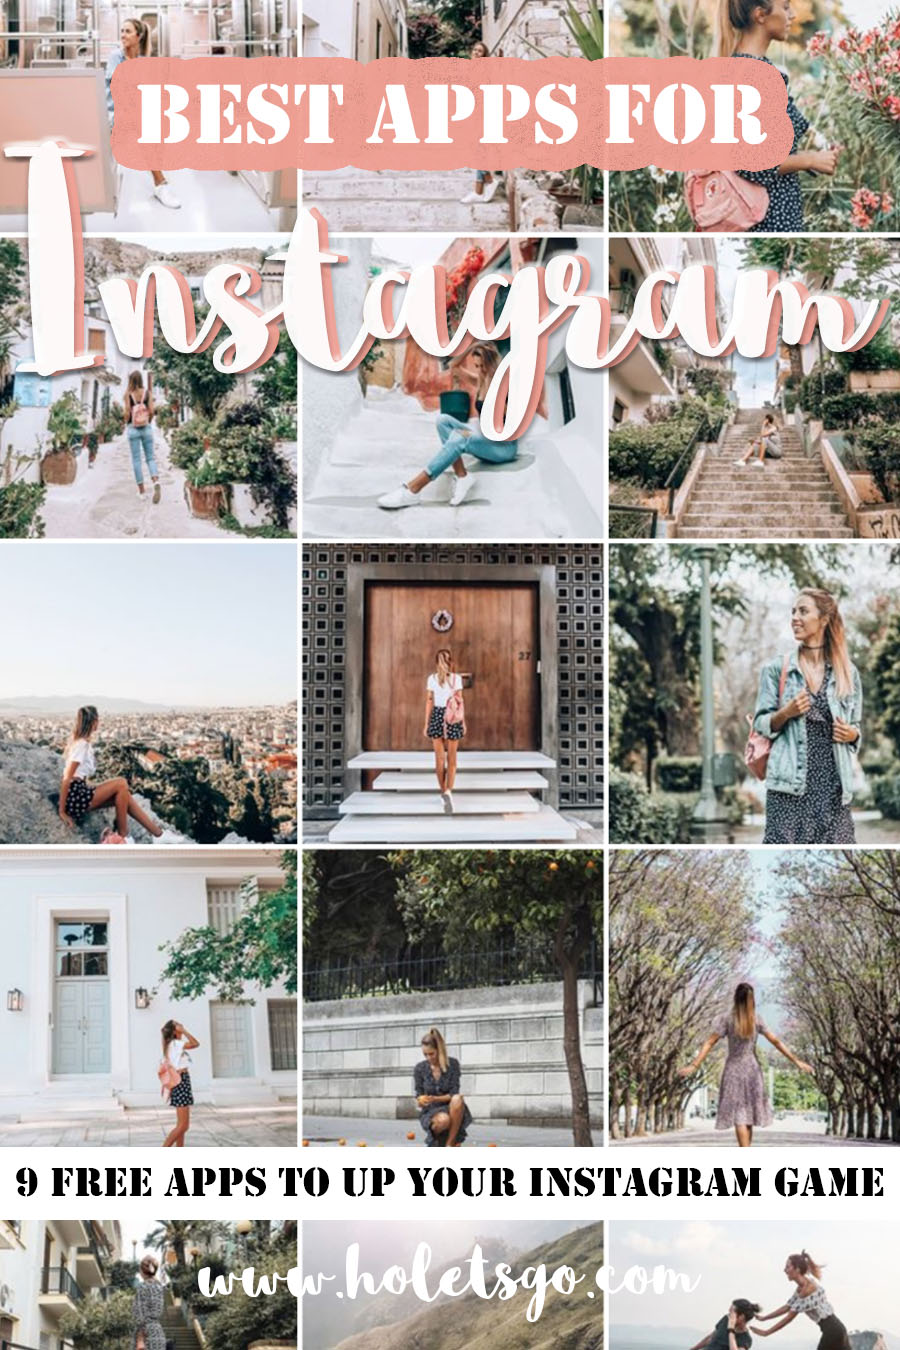 HOW TO GROW ON INSTAGRAM · 9 Free Apps To Help You Grow On Instagram